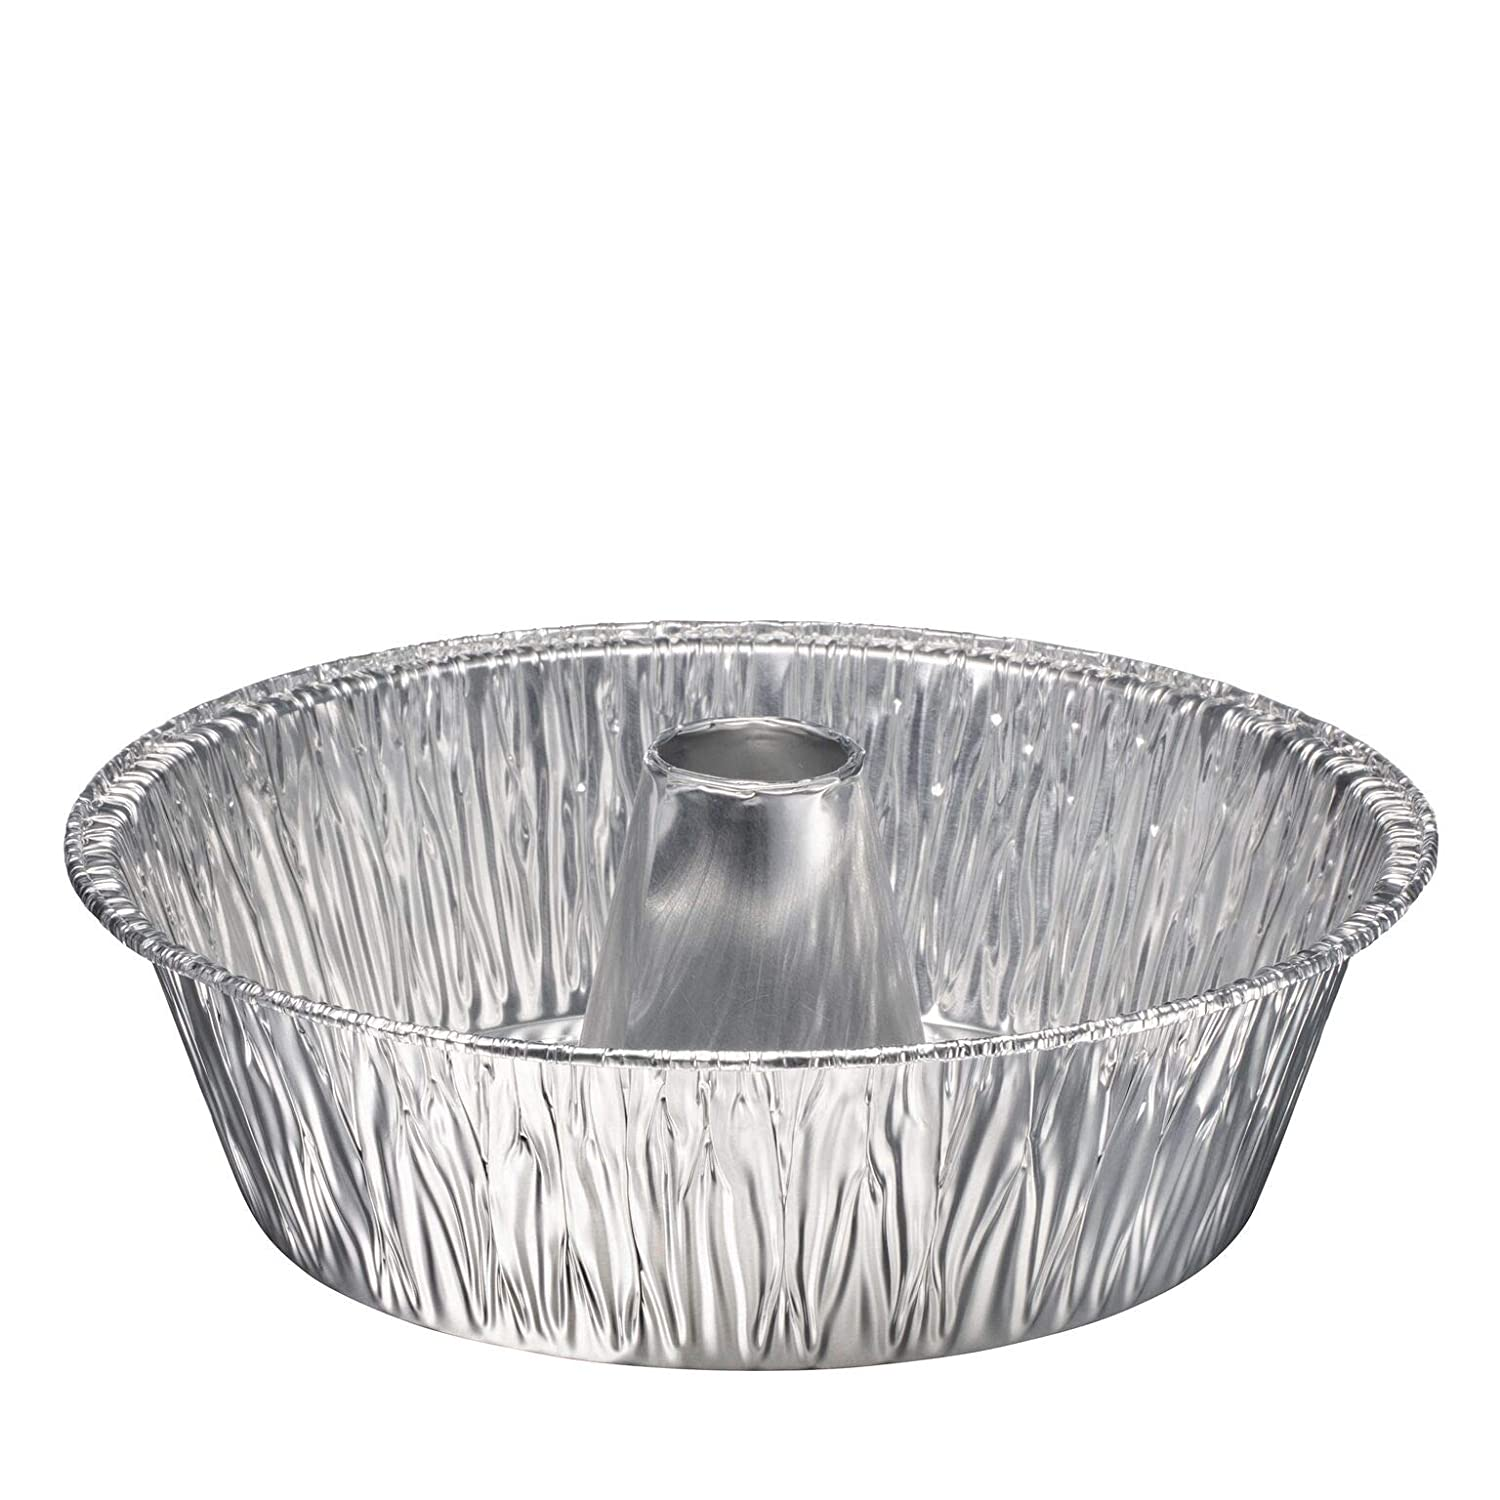 Disposable Round Cake Baking Pans - Aluminum Foil Bundt Tube Tin Great for Baking Decorative Display, Parties 10